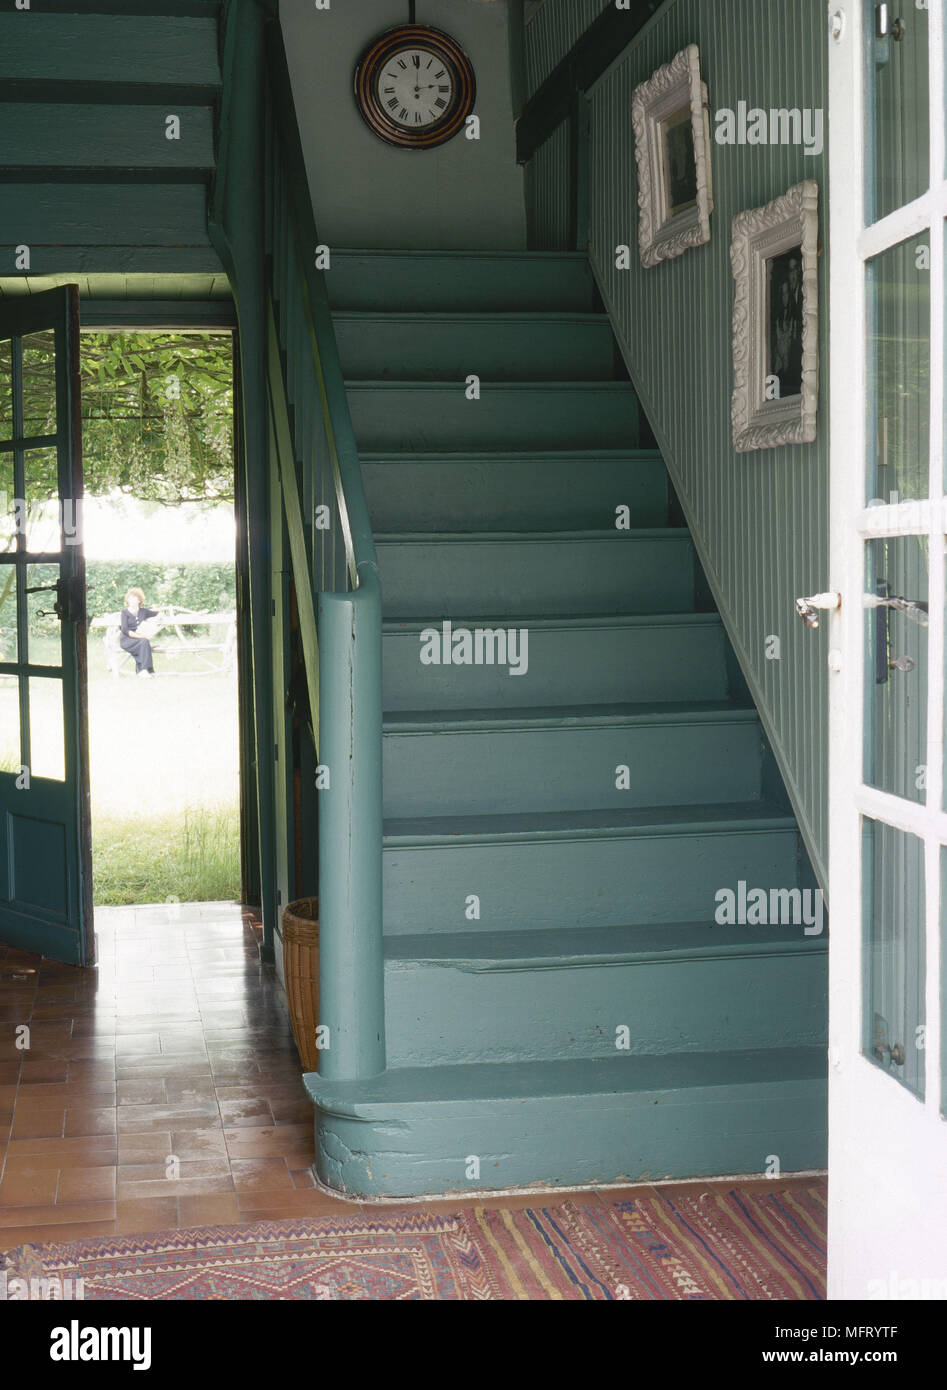 Painted Staircase Stock Photos Painted Staircase Stock Images Alamy